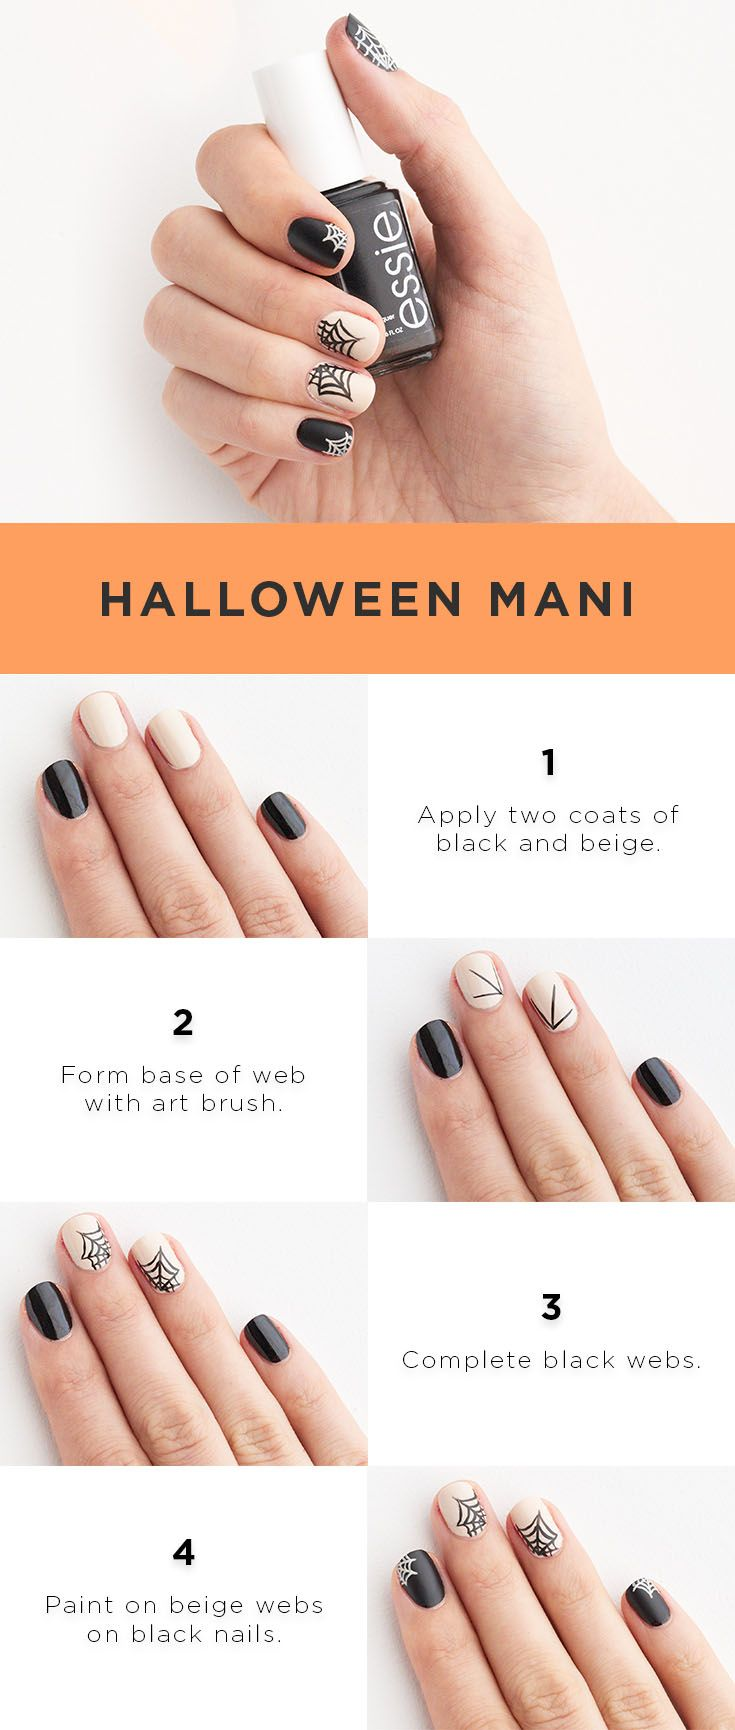 "Make this boo-tiful manicure yours in four easy steps. Apply two coats each of essie ""licorice"" and bliss ""in this day & beige"" onto your nails. Using an art brush, paint three black lines onto beige nails to form the base of the web. Finish the webs in black and apply a topcoat to seal. With beige, paint small webs using the same method on the black nails. Finish with topcoat. Shop essie and bliss nail polish at Kohl's."